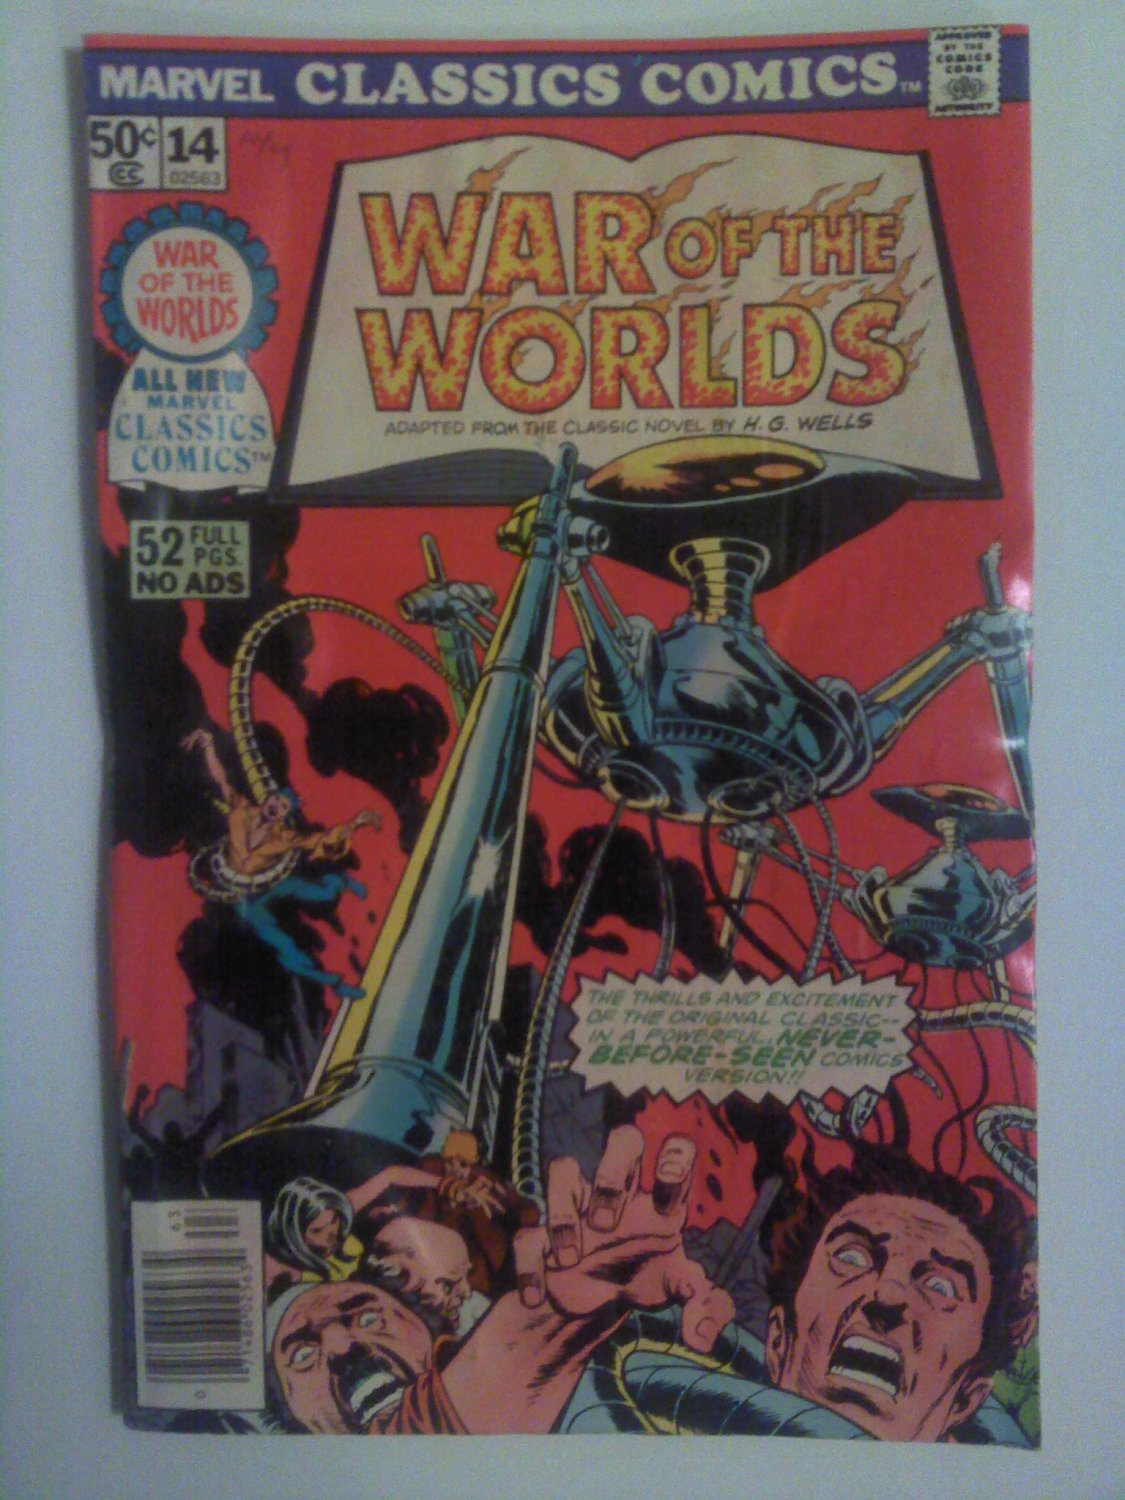 Marvel Classics Comics #14 War of the Worlds 52 pages no Ads